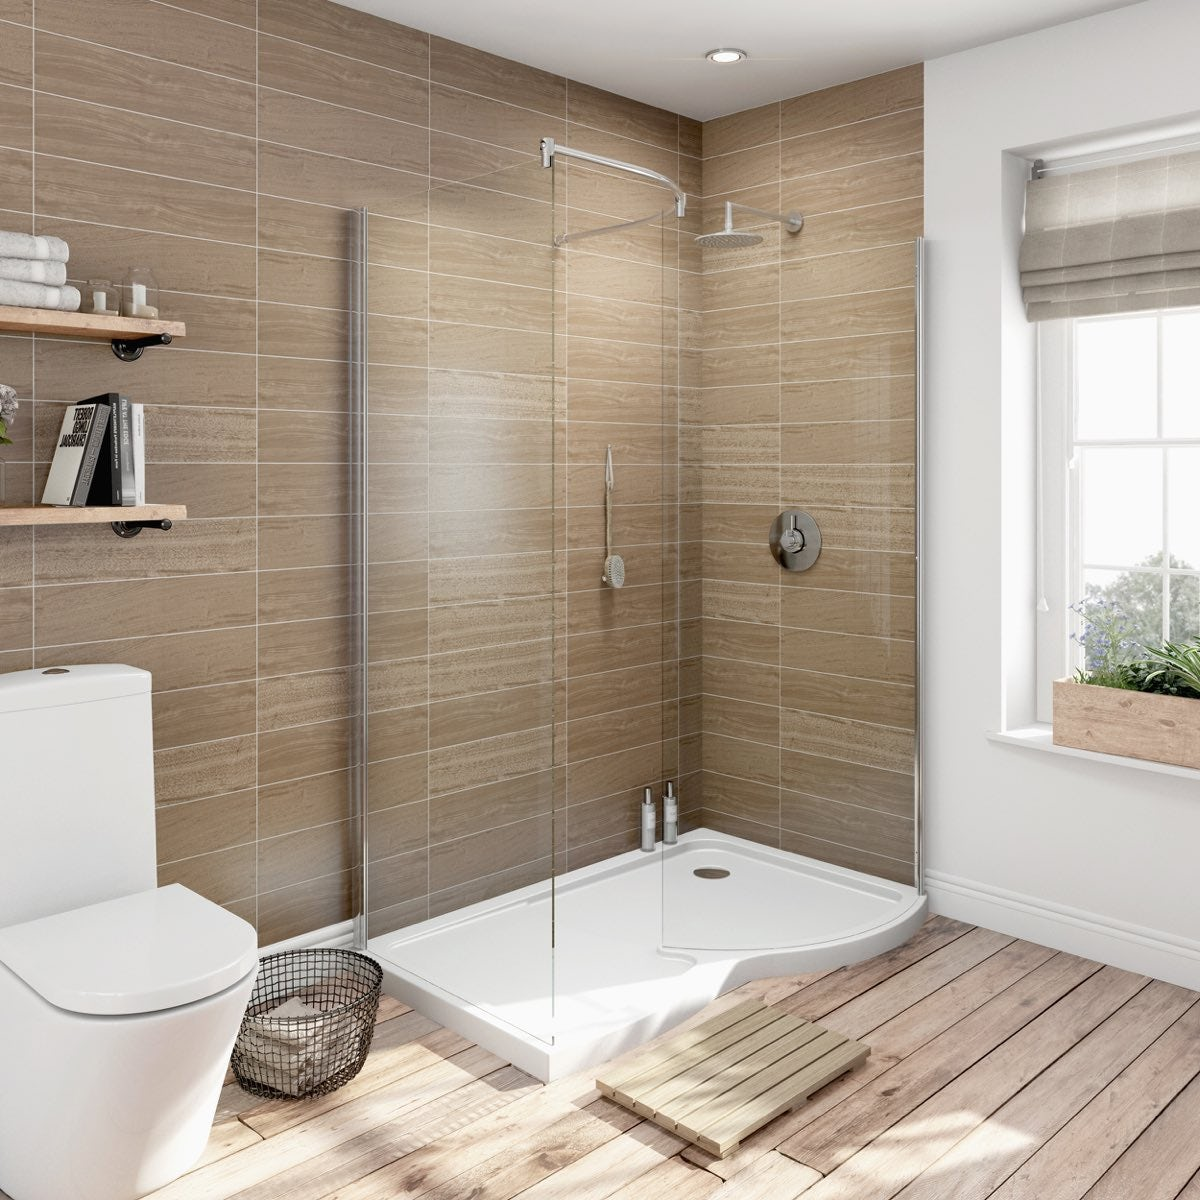 6mm curved rh walk in shower enclosure with tray 1400x900 - Salle de bain beige et taupe ...